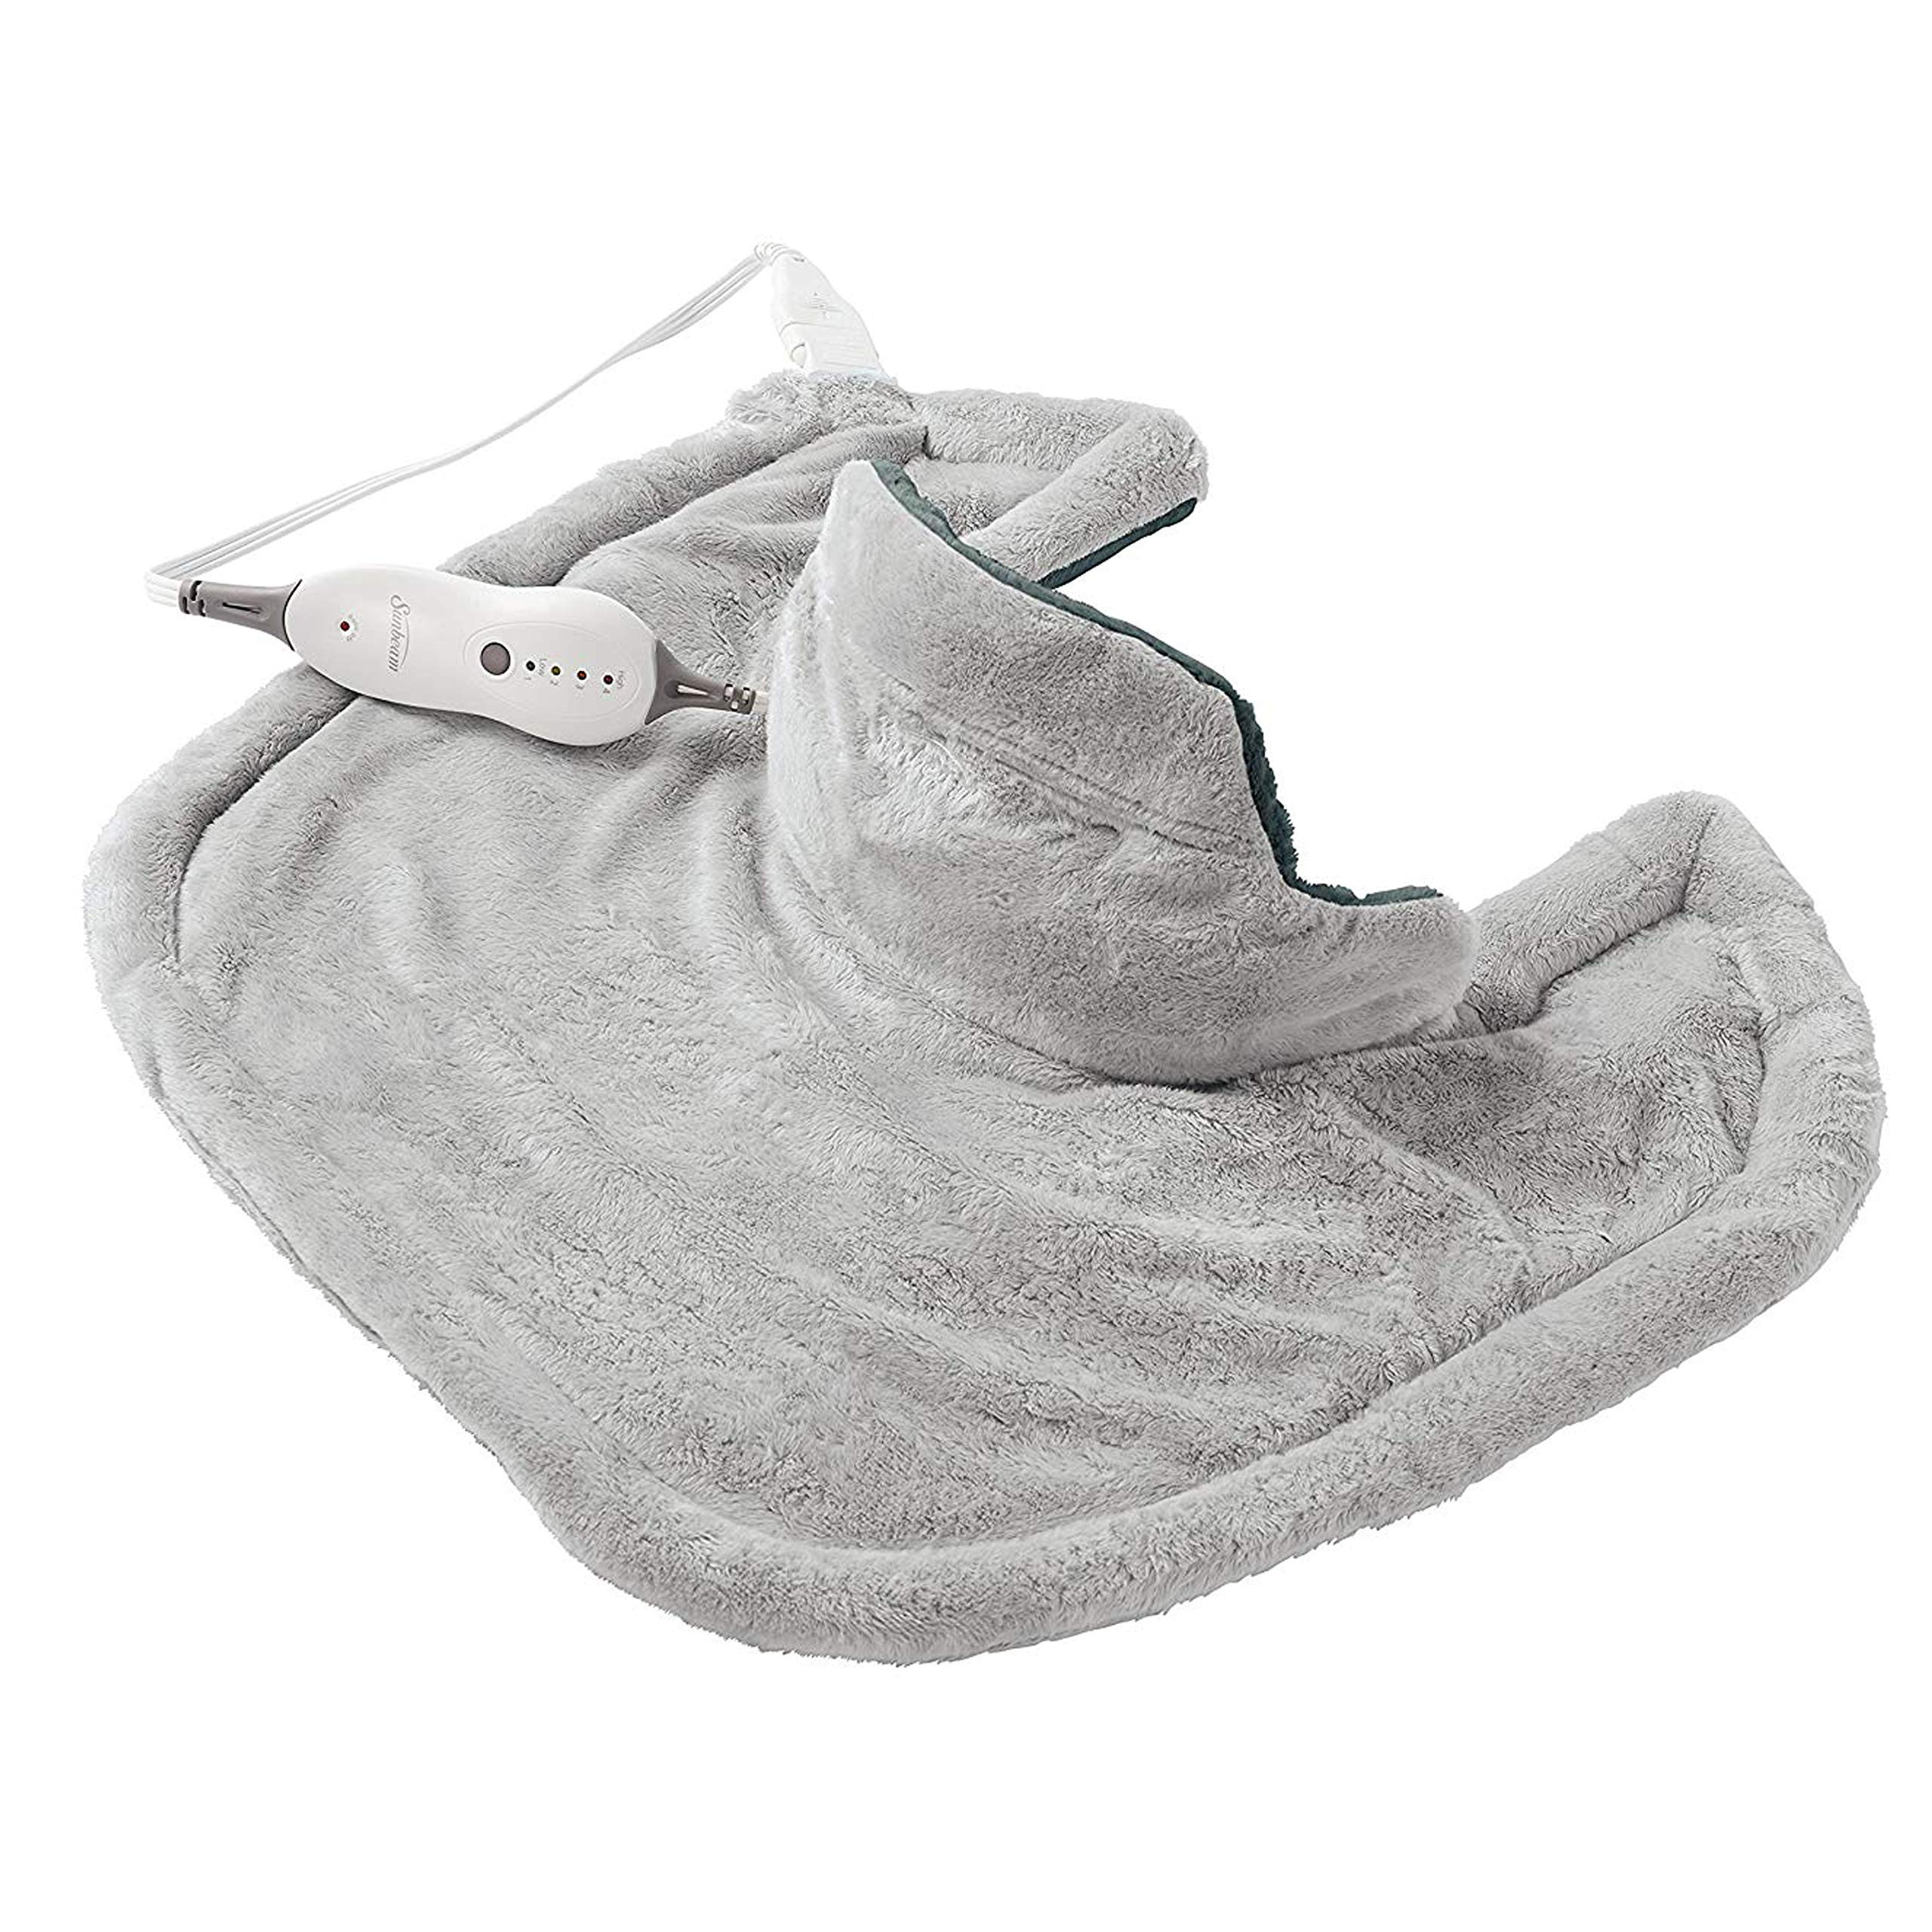 Sunbeam Heating Pad for Neck & Shoulder Pain Relief | Standard Size Renue, 4 Heat Settings with Auto-Off | Grey, 22-Inch x 19-Inch by Sunbeam